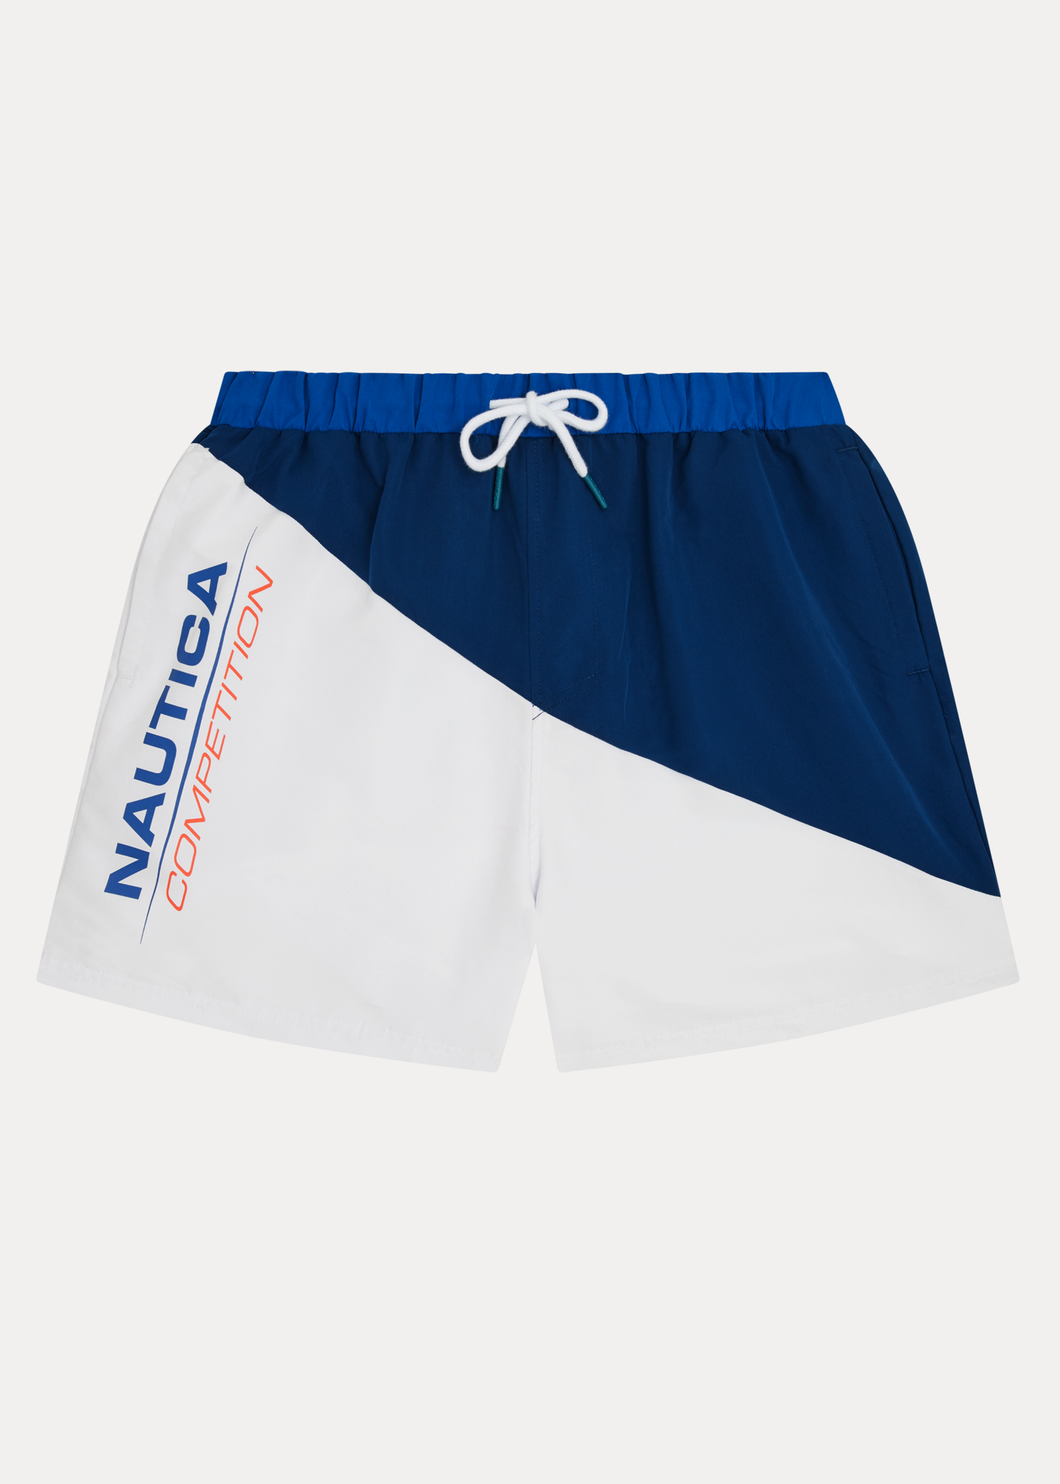 Sterling Swim Short - Navy/White